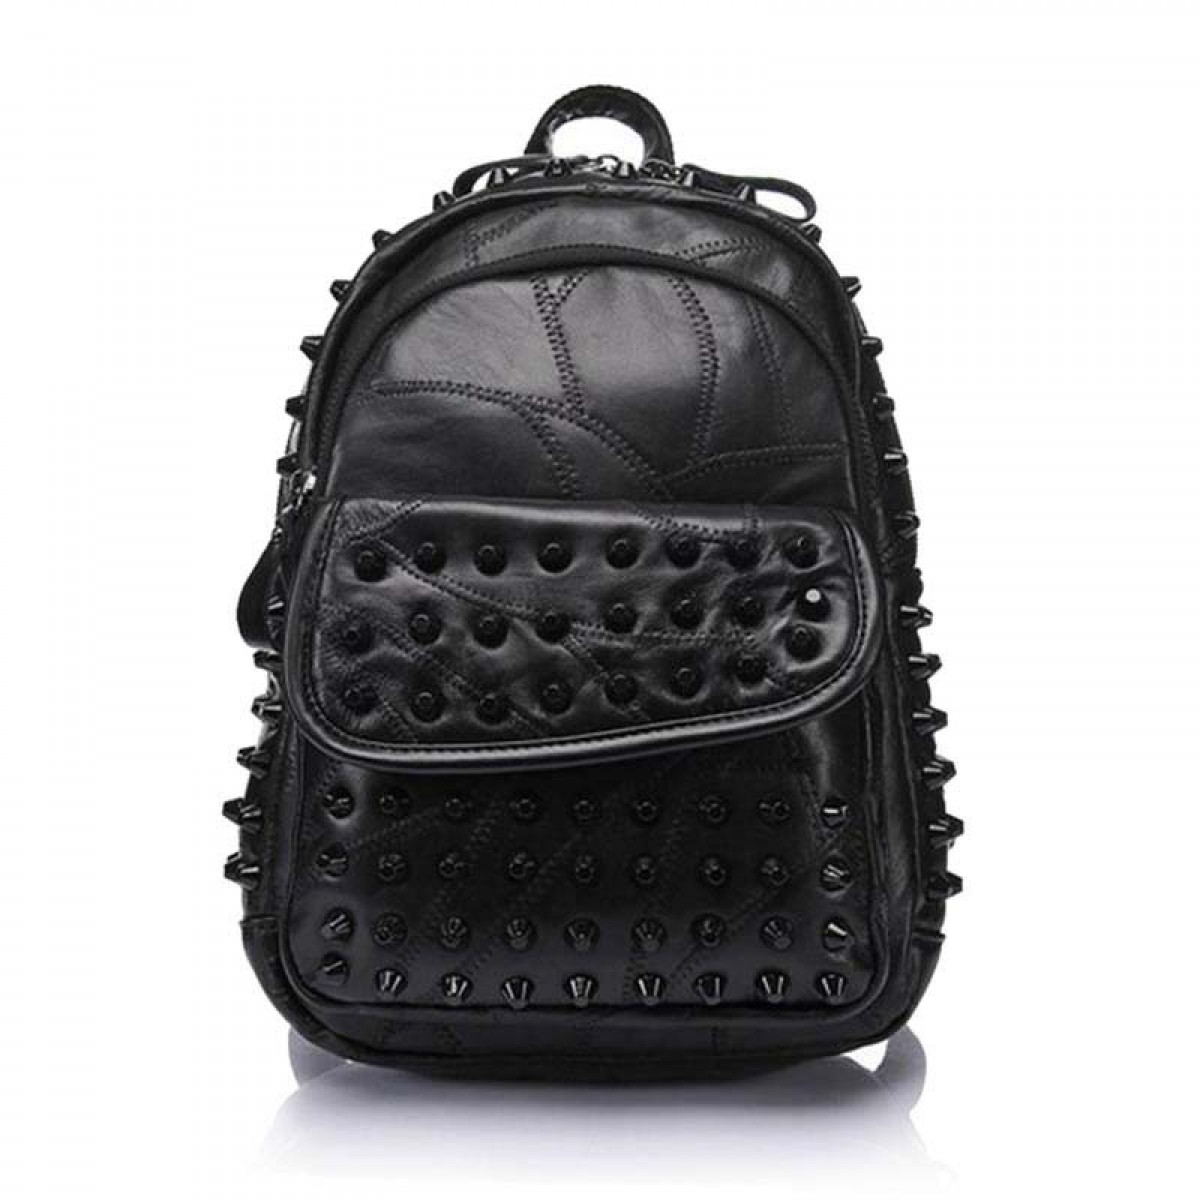 Spiked Backpack Punk Chic Black Leather | LATICCI